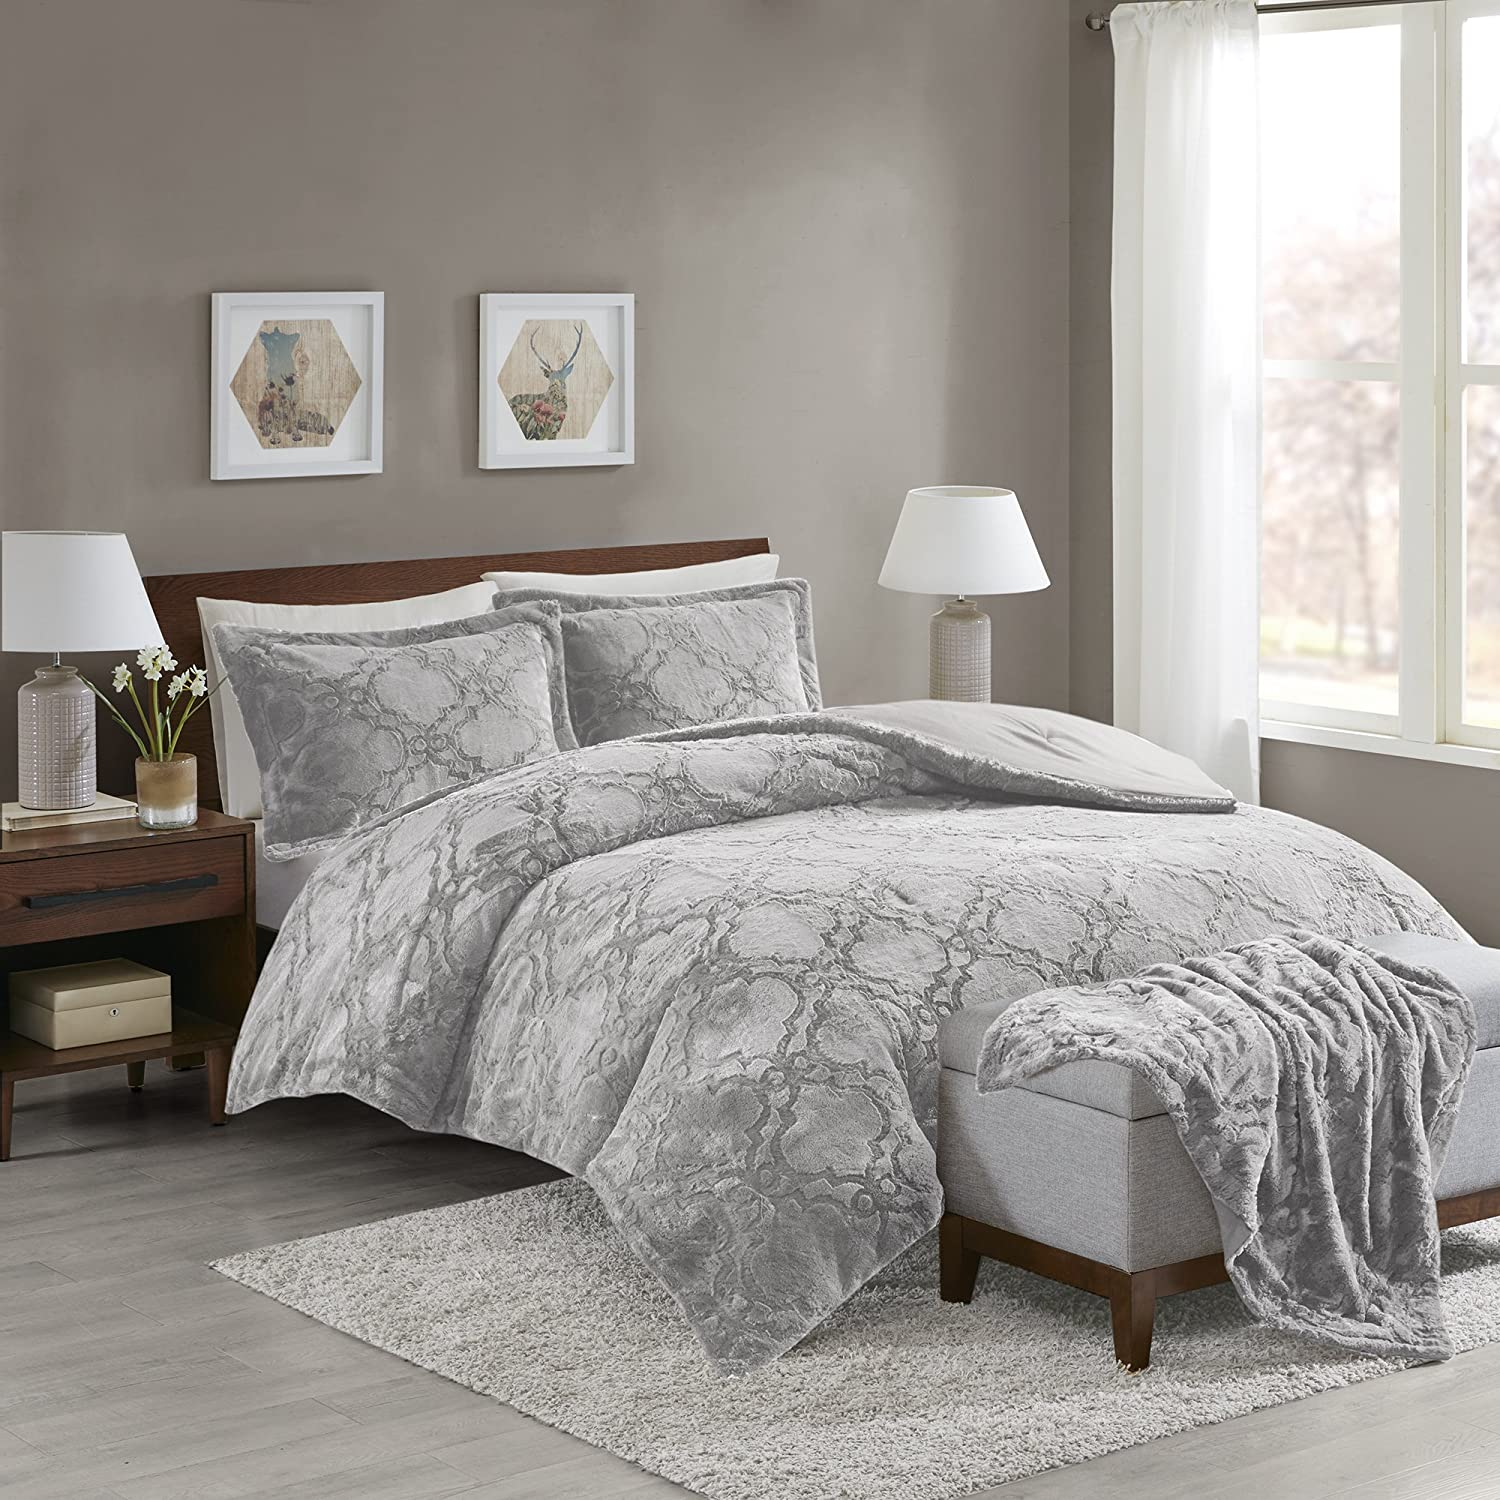 Comfort Spaces Odessa Long Fur Set + Cozy Combo-4 Piece-Snugly Warm and Ultra Soft-Includes 1 Comforter, 2 Shams, 1 Throw-Blanket, King, Grey